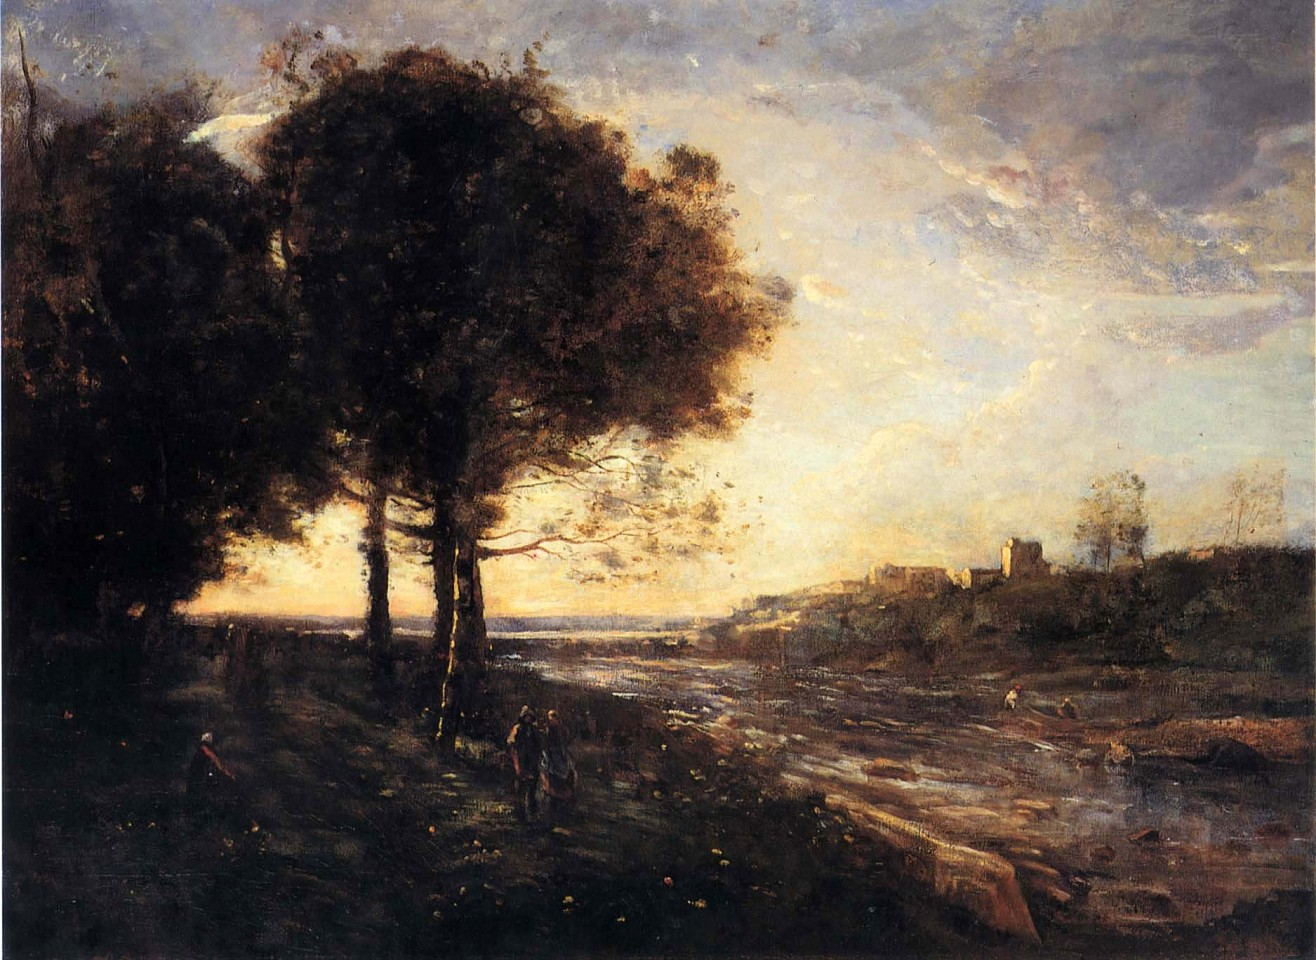 Jean Baptiste Camille Corot ,   Un Torrent dans des Romagnes  ,  1872     Oil on canvas ,  25 7/8 x 35 3/4 in. (65.7 x 90.8 cm)     COR-006-PA